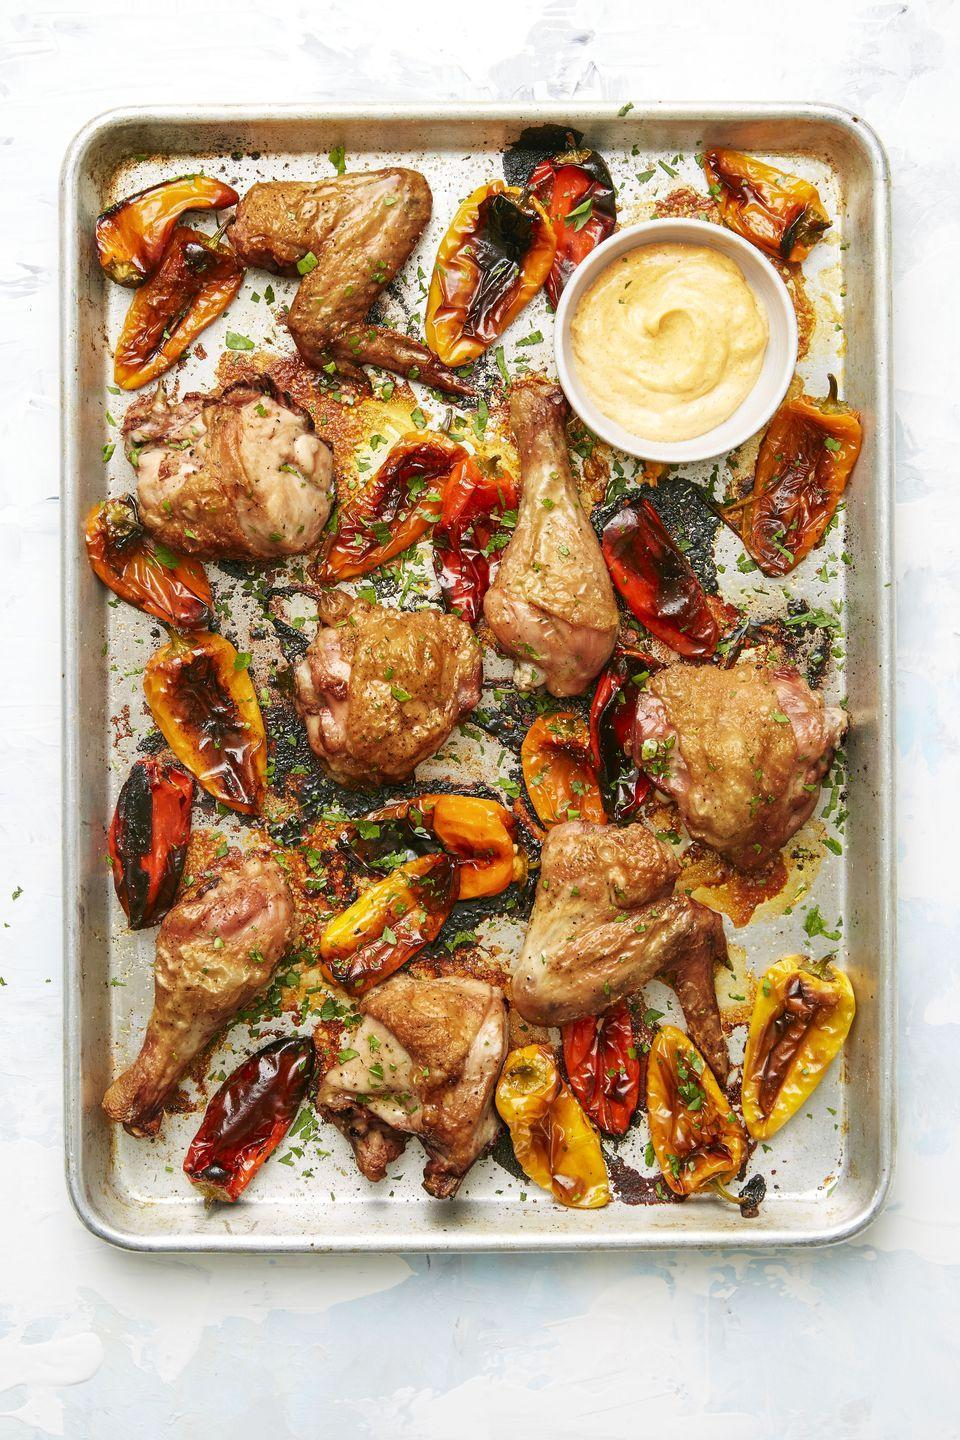 "<p>This one-and-done sheet pan dinner means less dishes to wash. You're welcome!</p><p><em><a href=""https://www.goodhousekeeping.com/food-recipes/easy/a34144/spanish-chicken-peppers/"" rel=""nofollow noopener"" target=""_blank"" data-ylk=""slk:Get the recipe for Spanish Chicken and Peppers »"" class=""link rapid-noclick-resp"">Get the recipe for Spanish Chicken and Peppers »</a></em></p>"